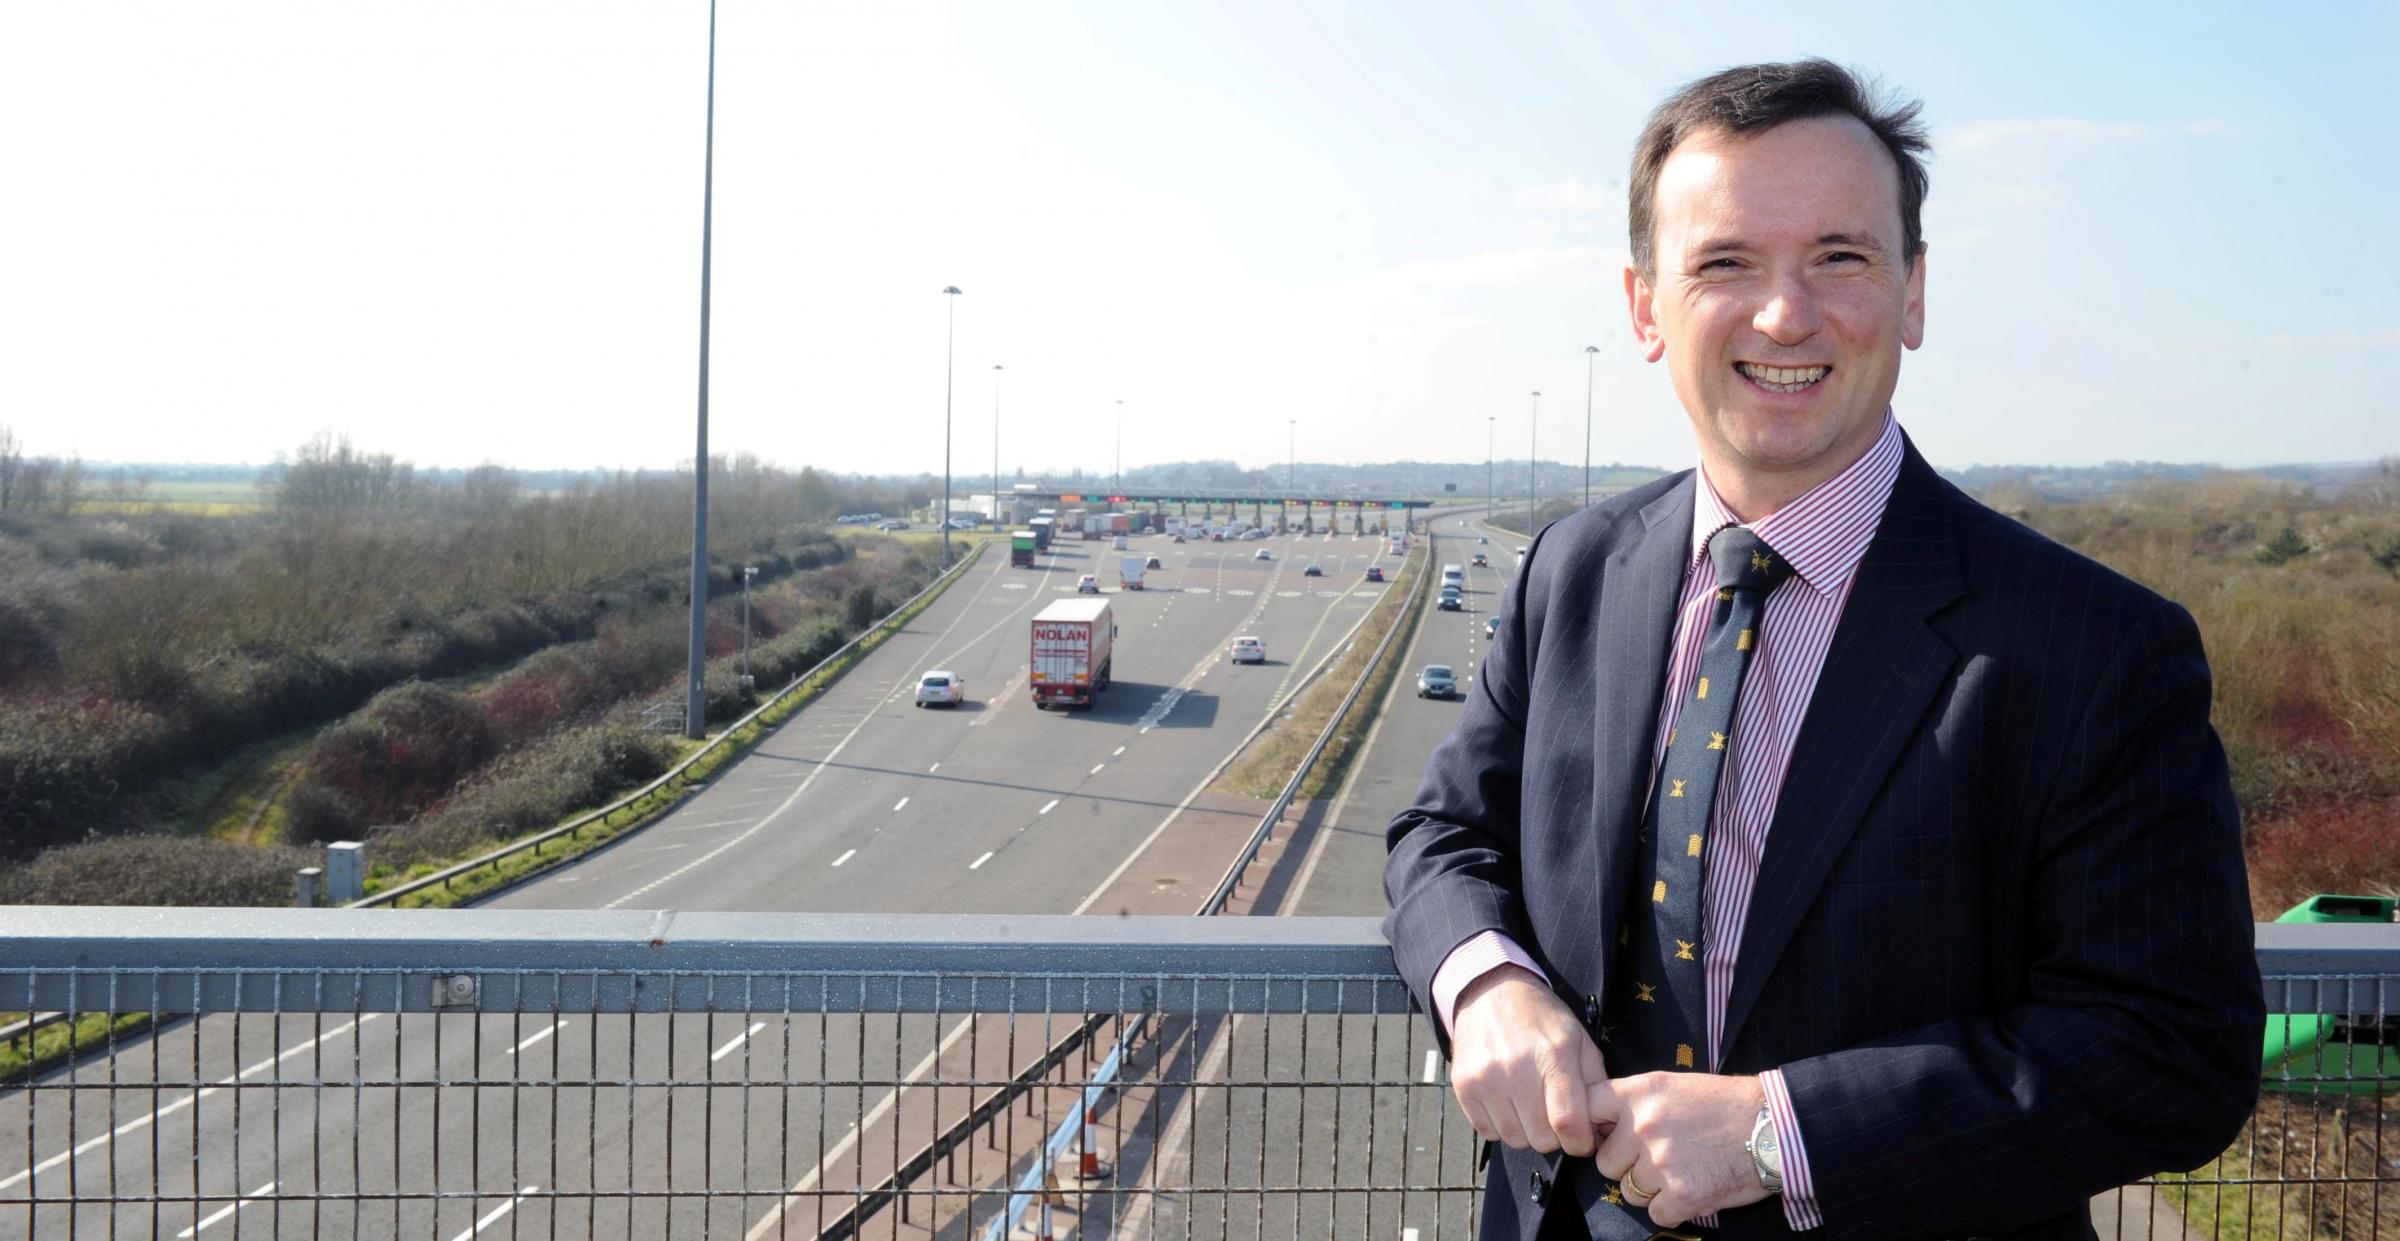 Secretary of State for Wales Alun Cairns talks about his vision for a Great Western Powerhouse